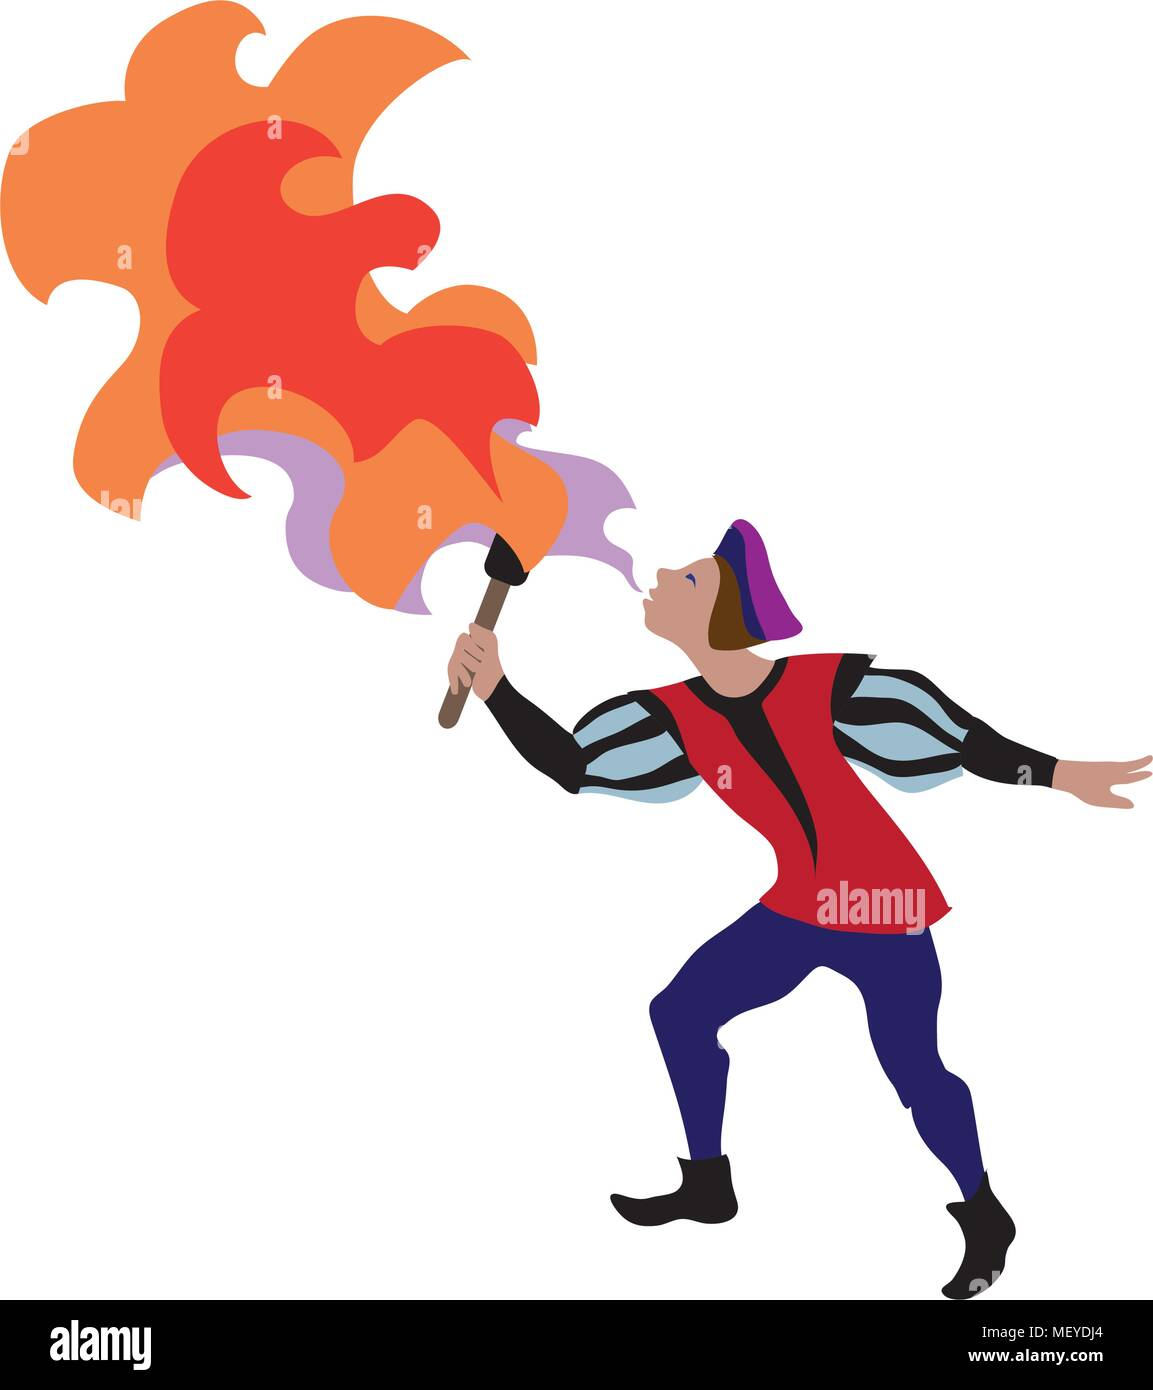 Medieval cartoon character of fire-breather in european middle ages or medieval period historic period persons. Vector illustration of renaissance fai - Stock Image